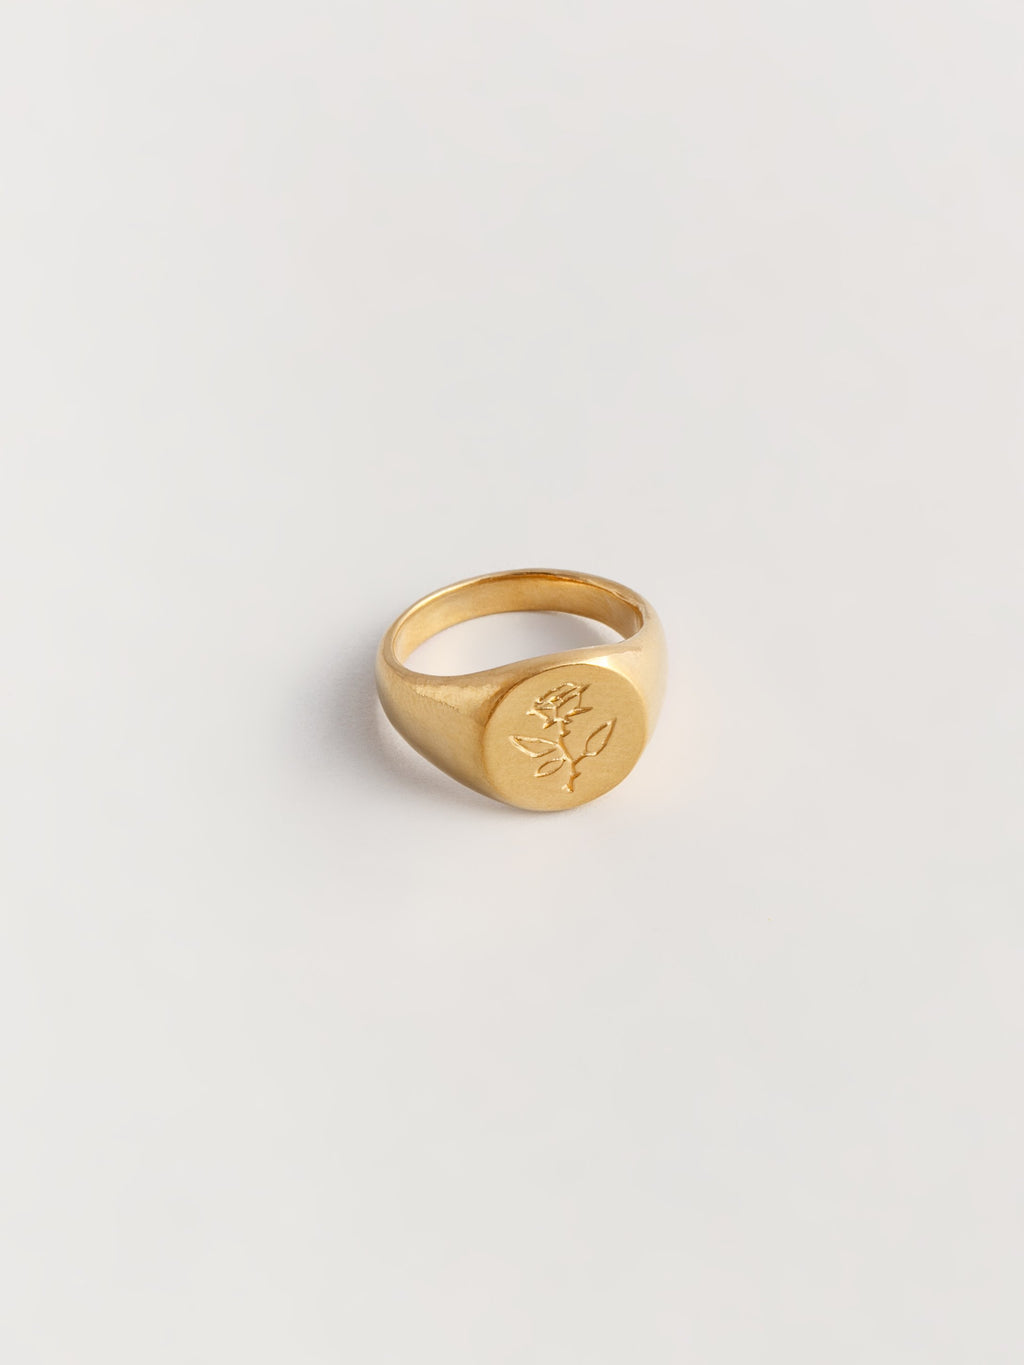 Rose Signet Ring in Gold